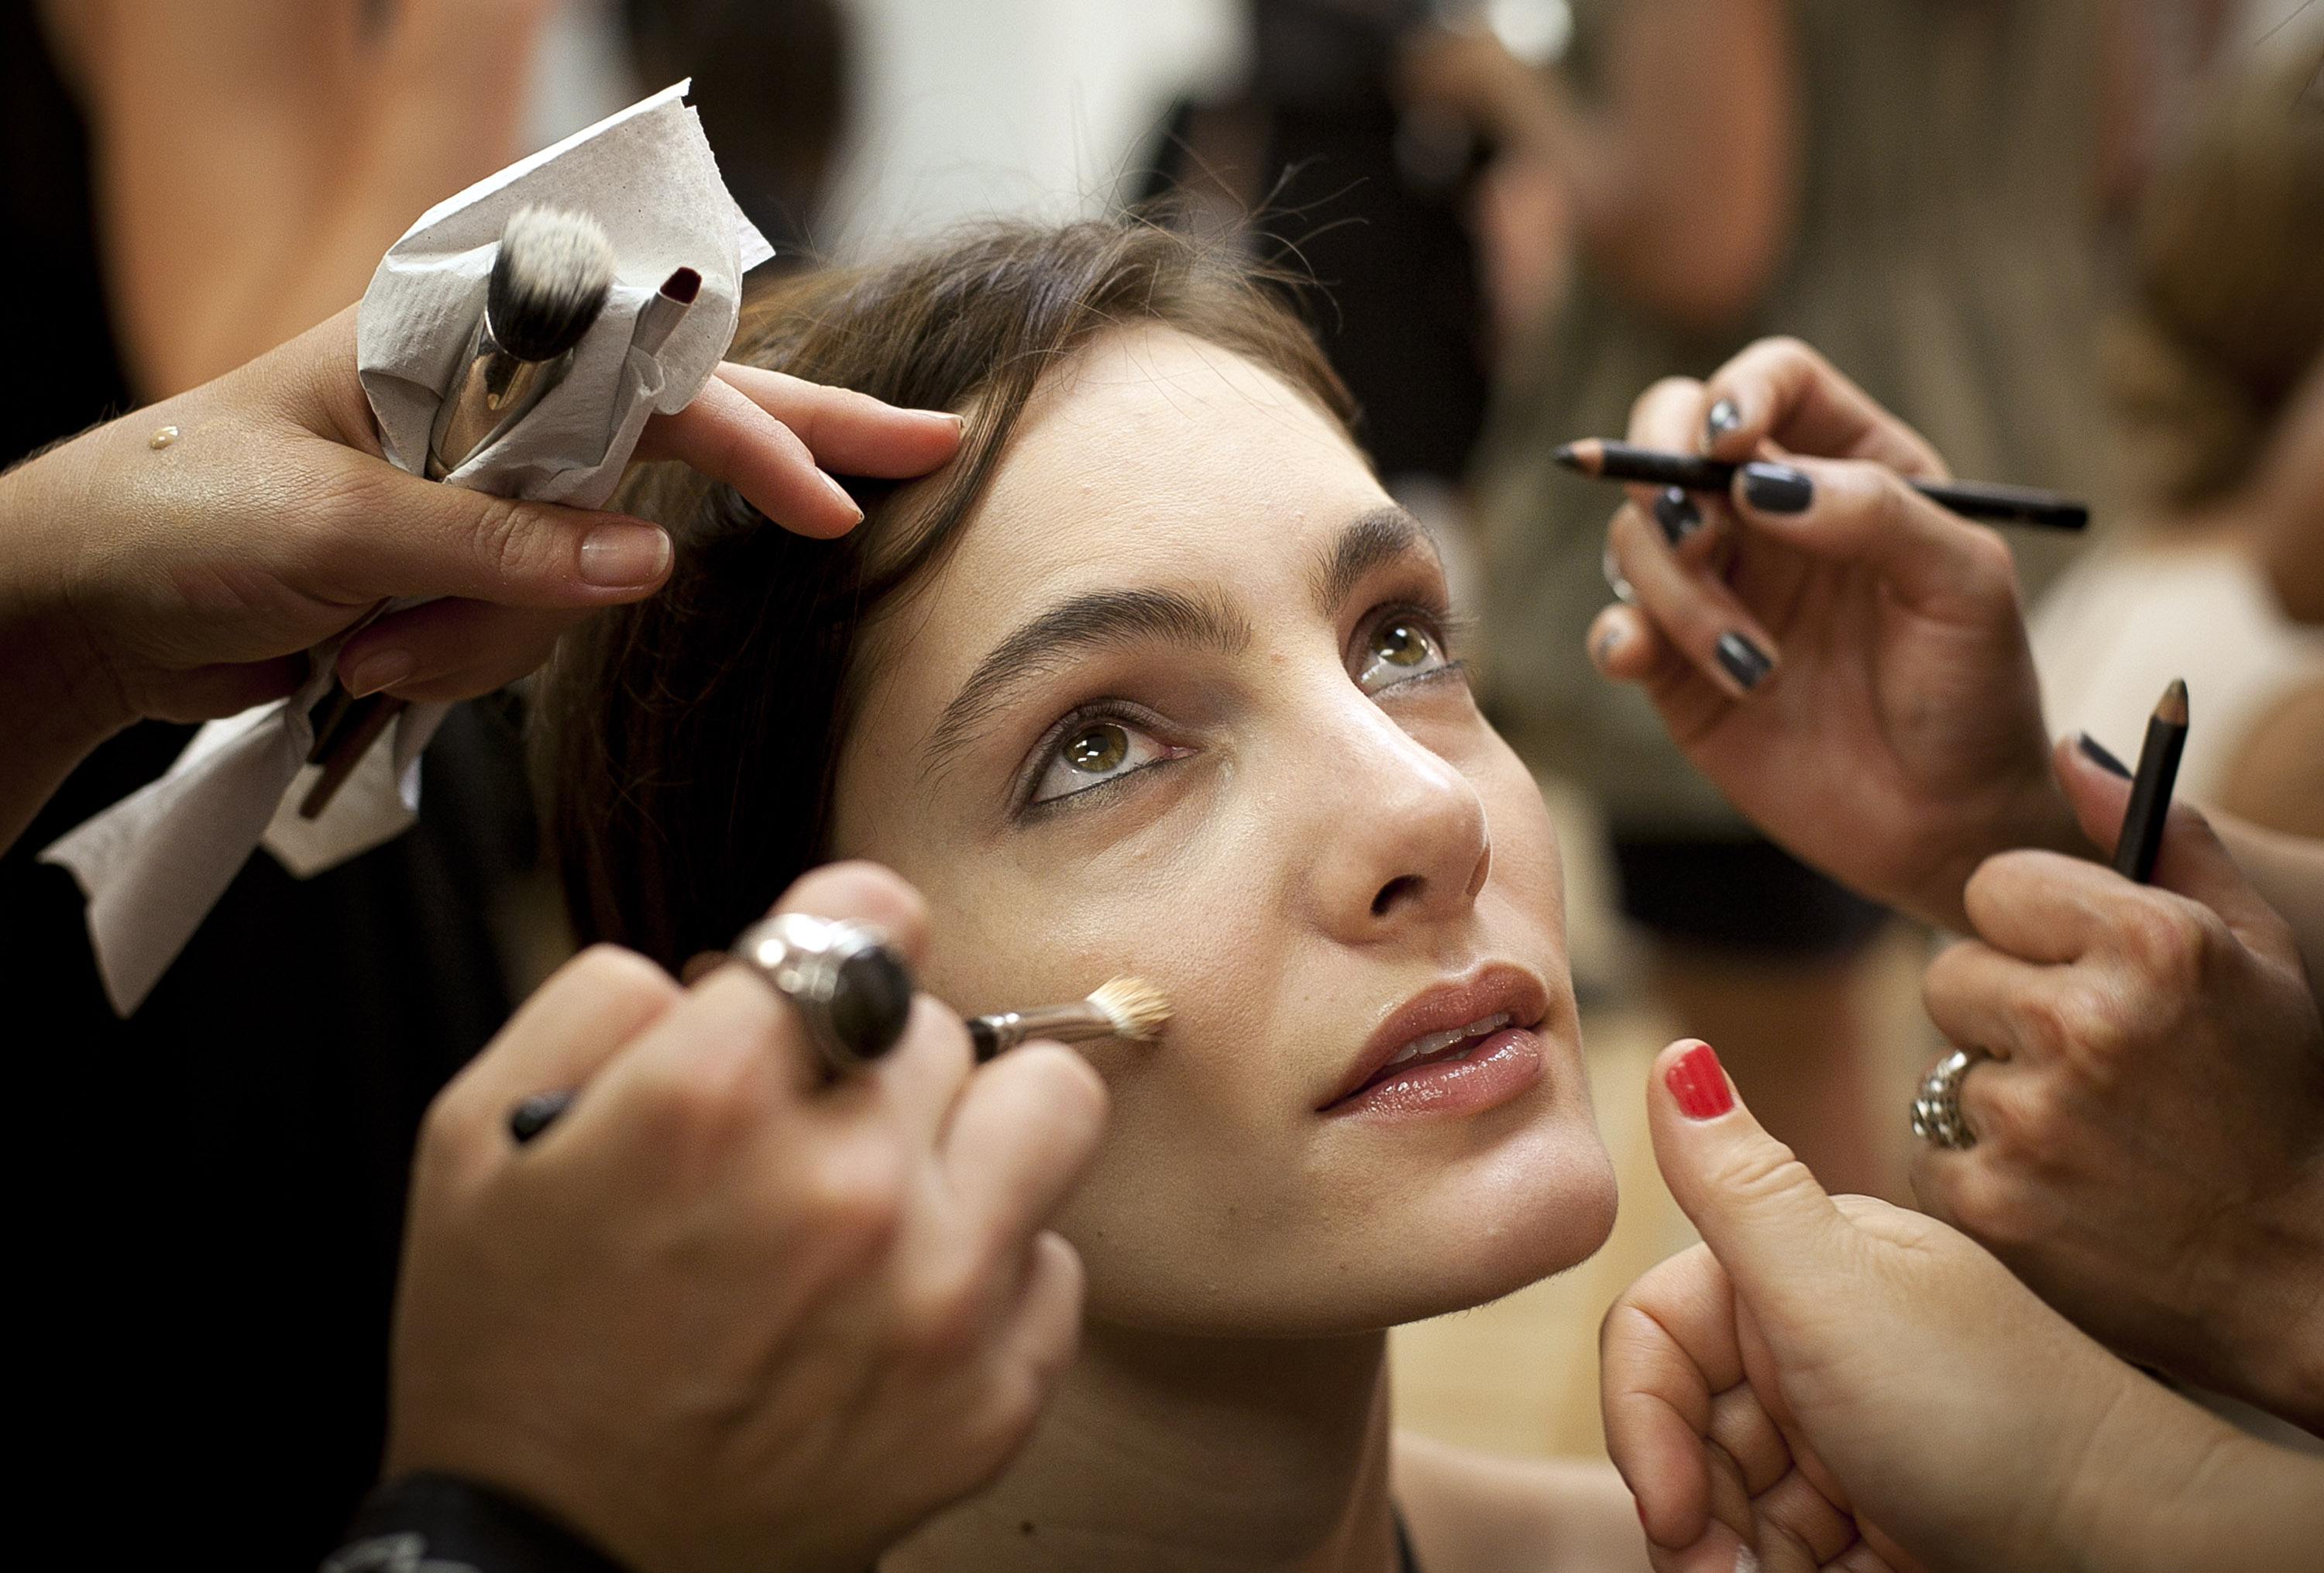 7 Scary Facts About Your Makeup pics